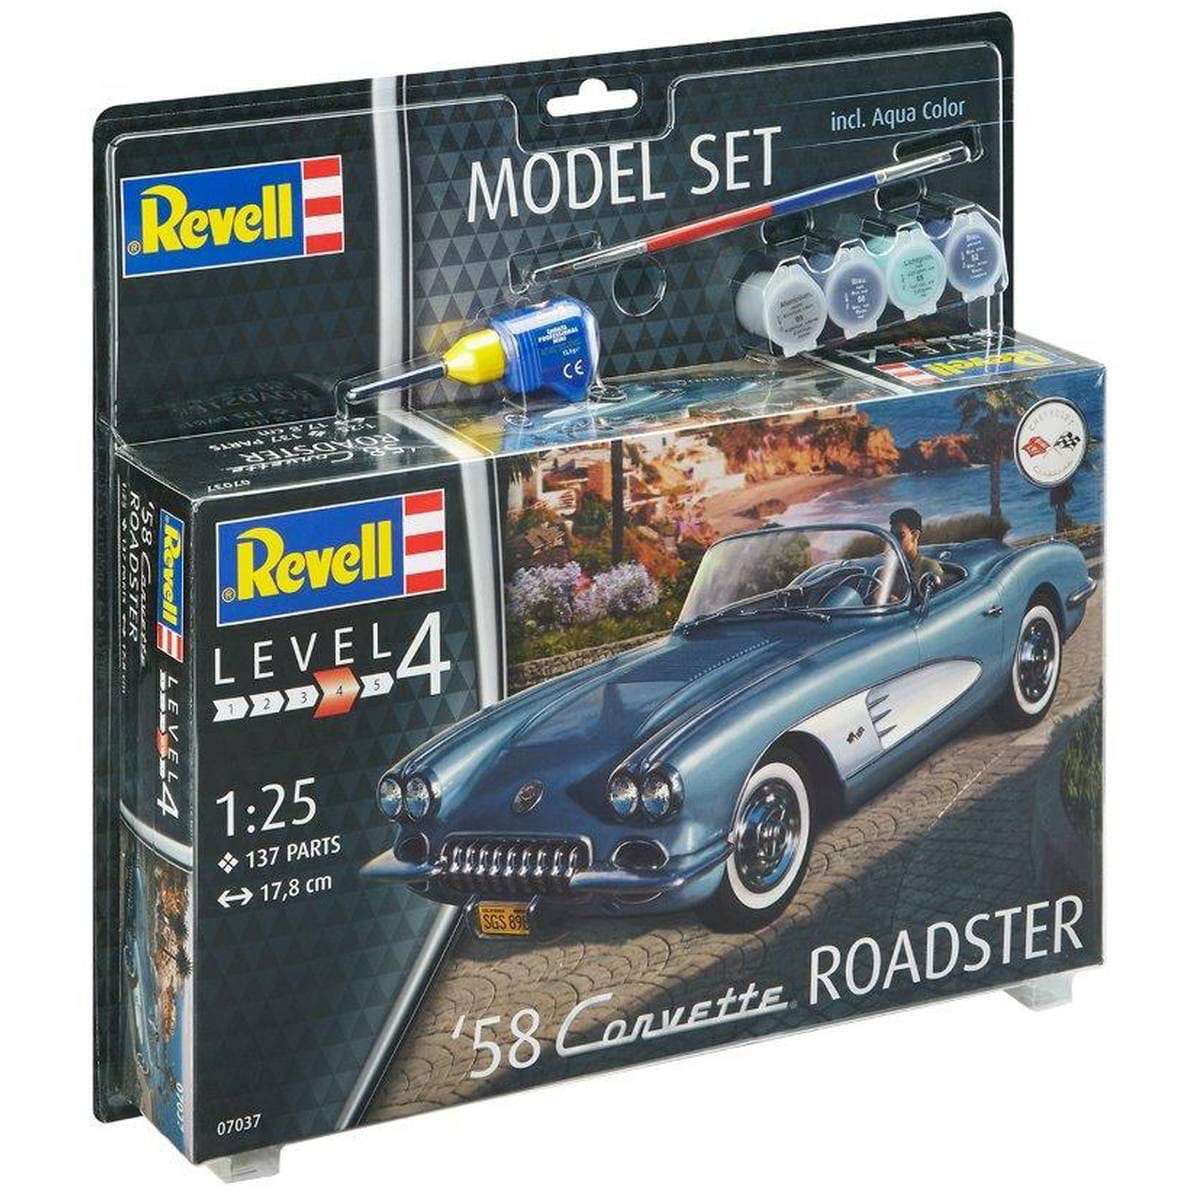 58 CORVETTE ROADSTER 1:25 REV67037 - KIT COMPLETO PARA MONTAR (MODEL SET)